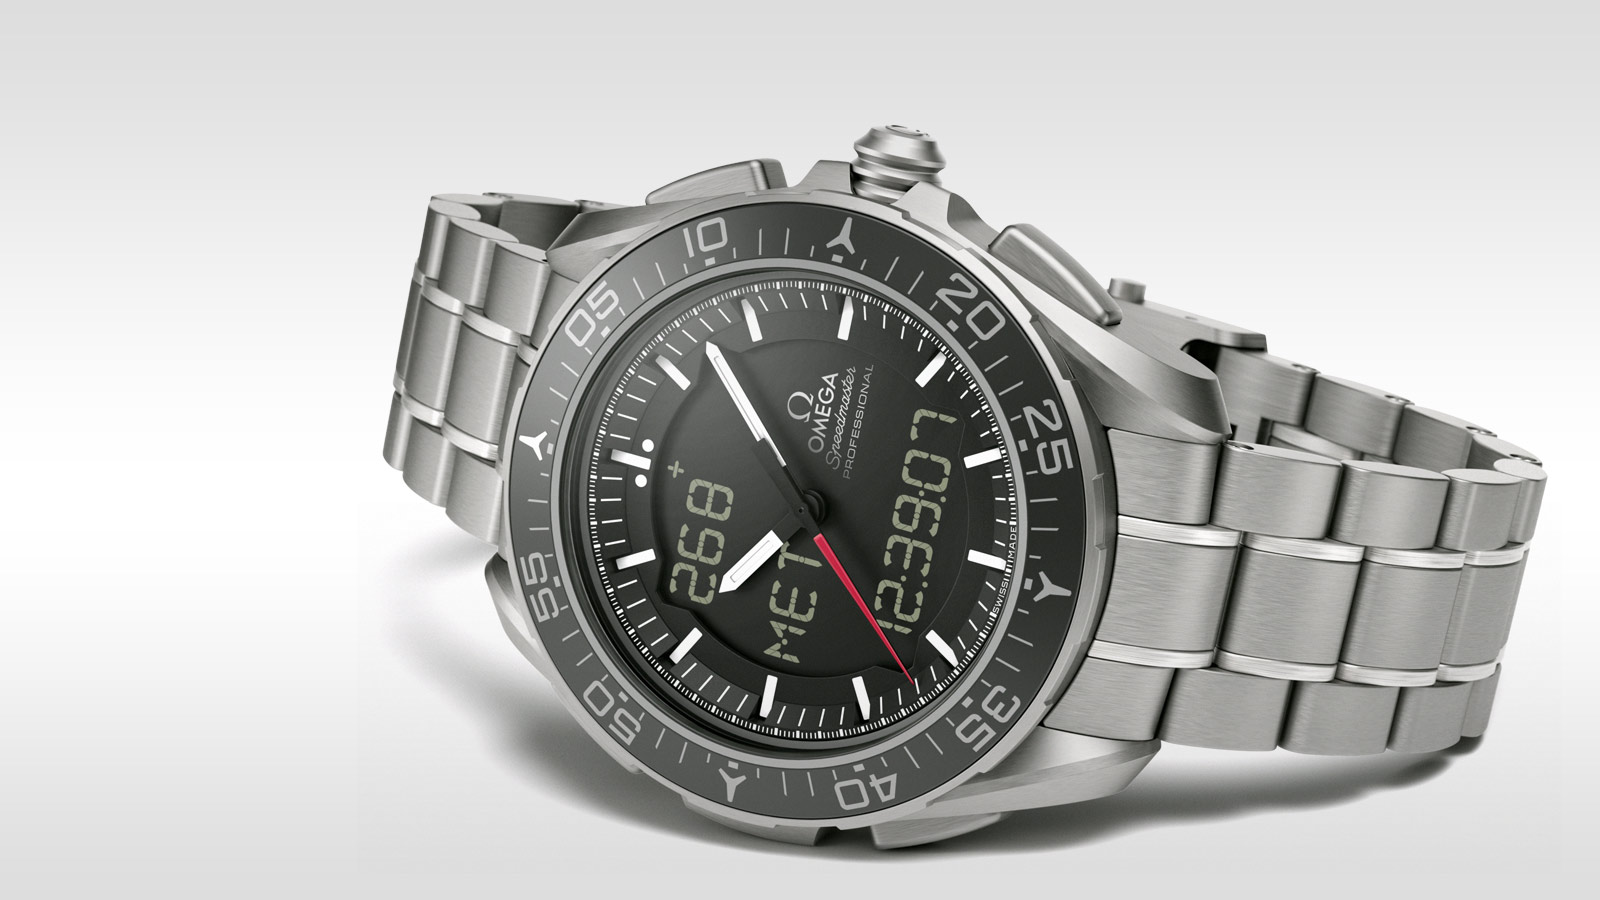 Speedmaster スカイウォーカー X‑33 Skywalker X‑33 Chronograph 45 mm - 318.90.45.79.01.001 - ビュー 2